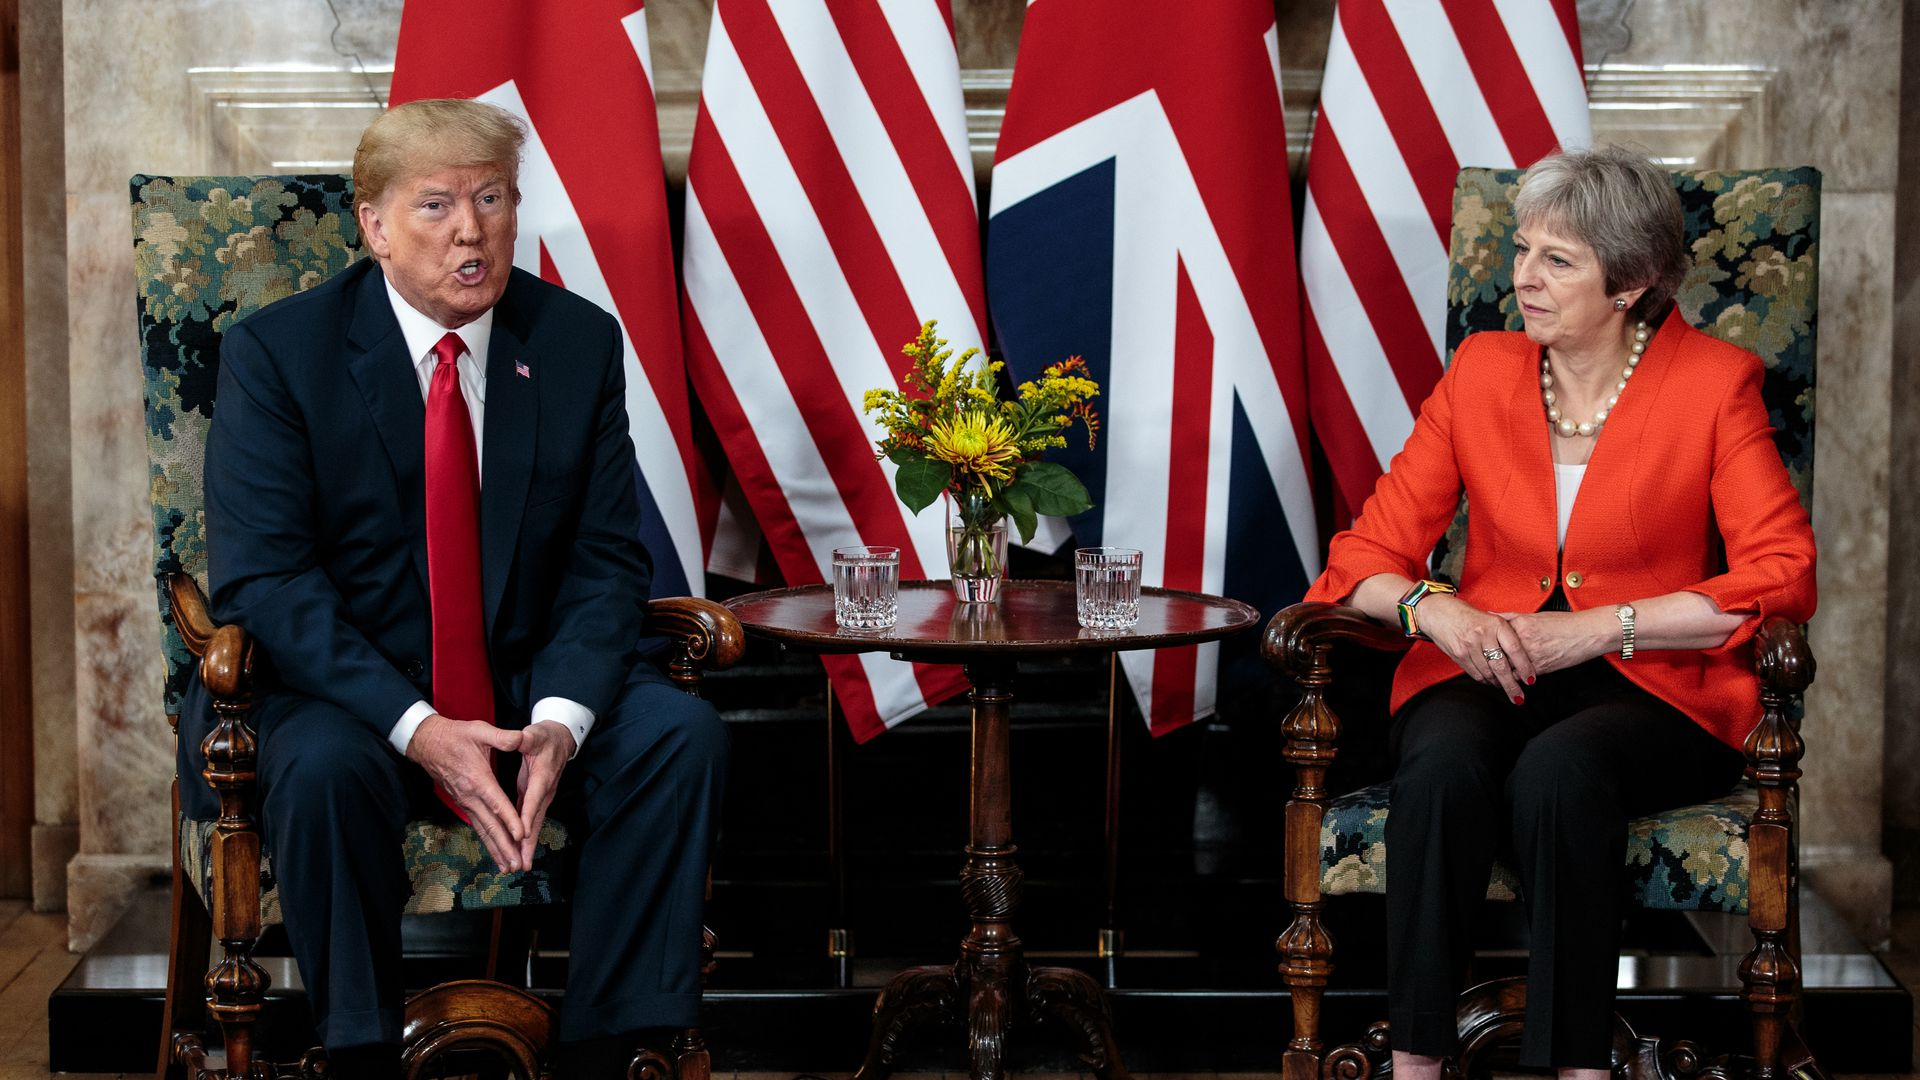 Trump and Theresa May sit together for a press conference